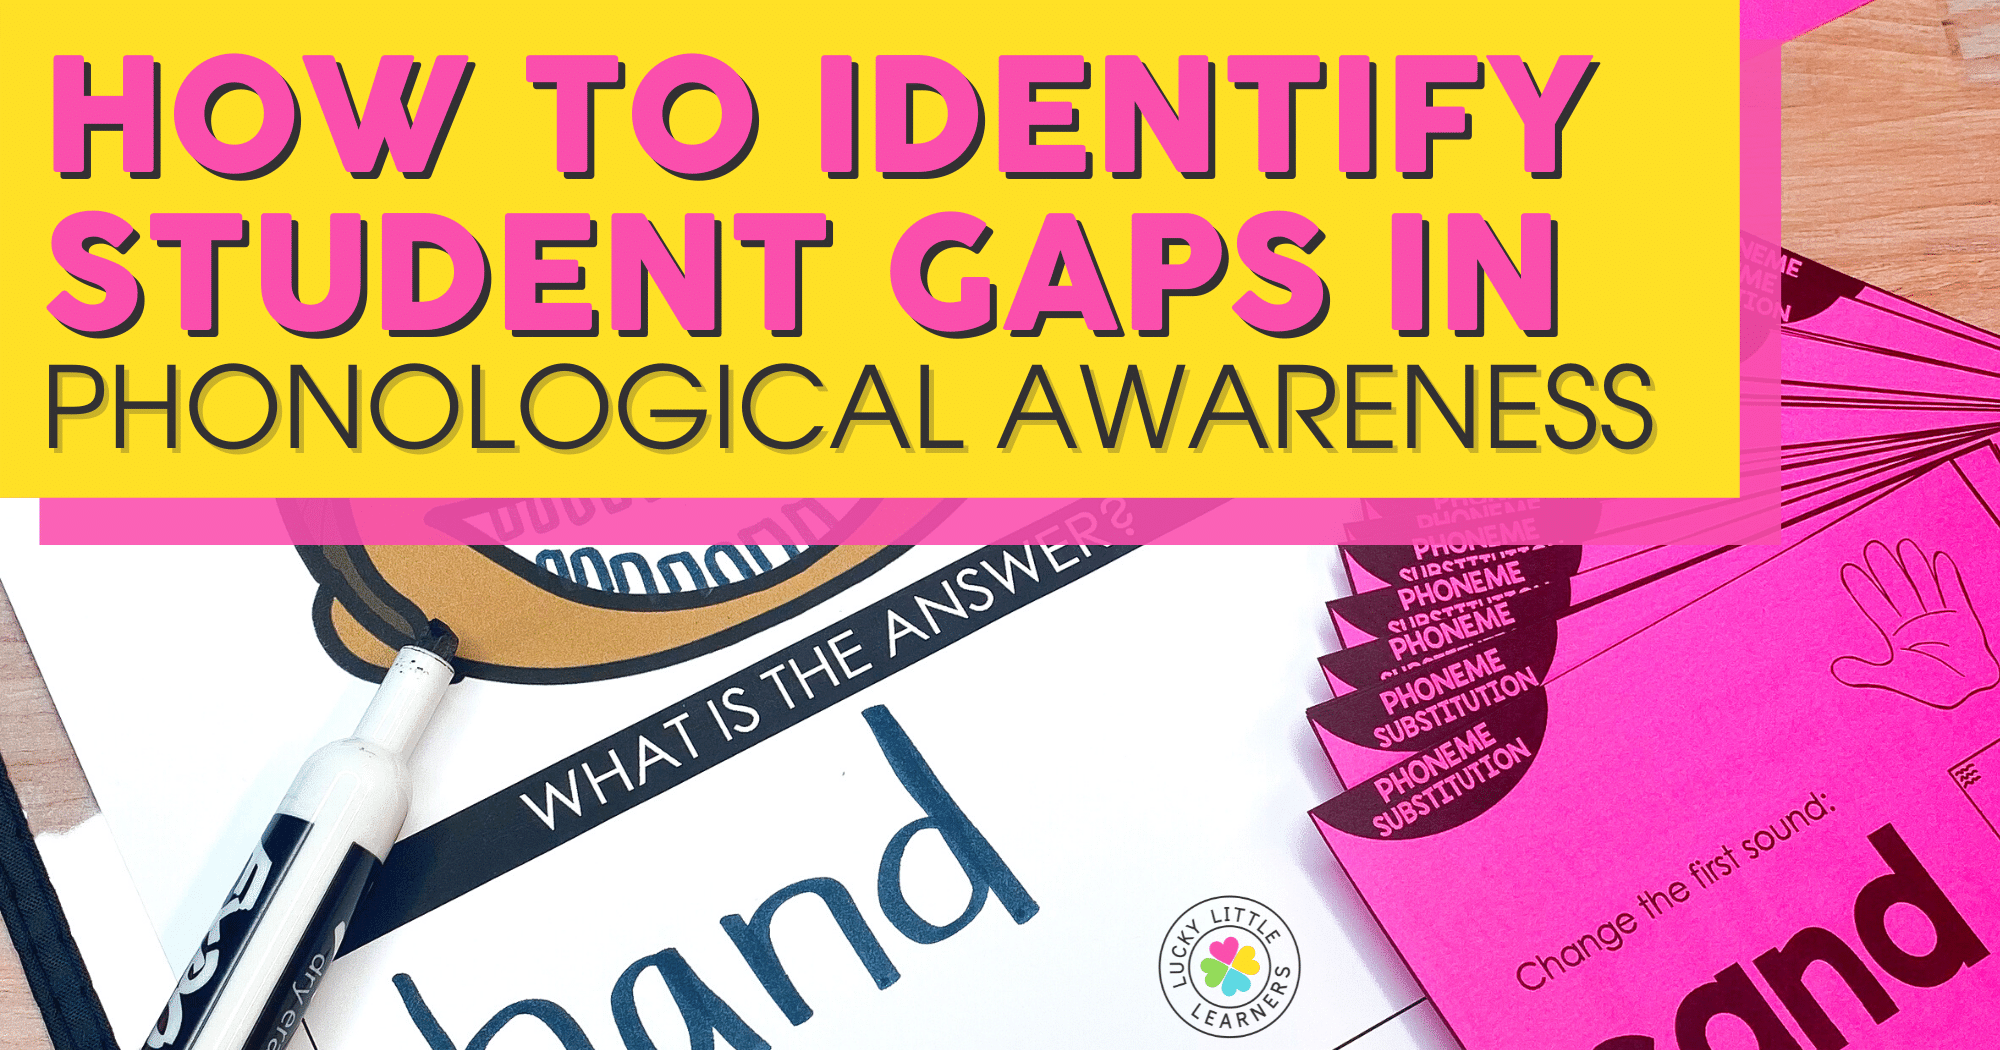 How to Identify Student Gaps in Phonological Awareness